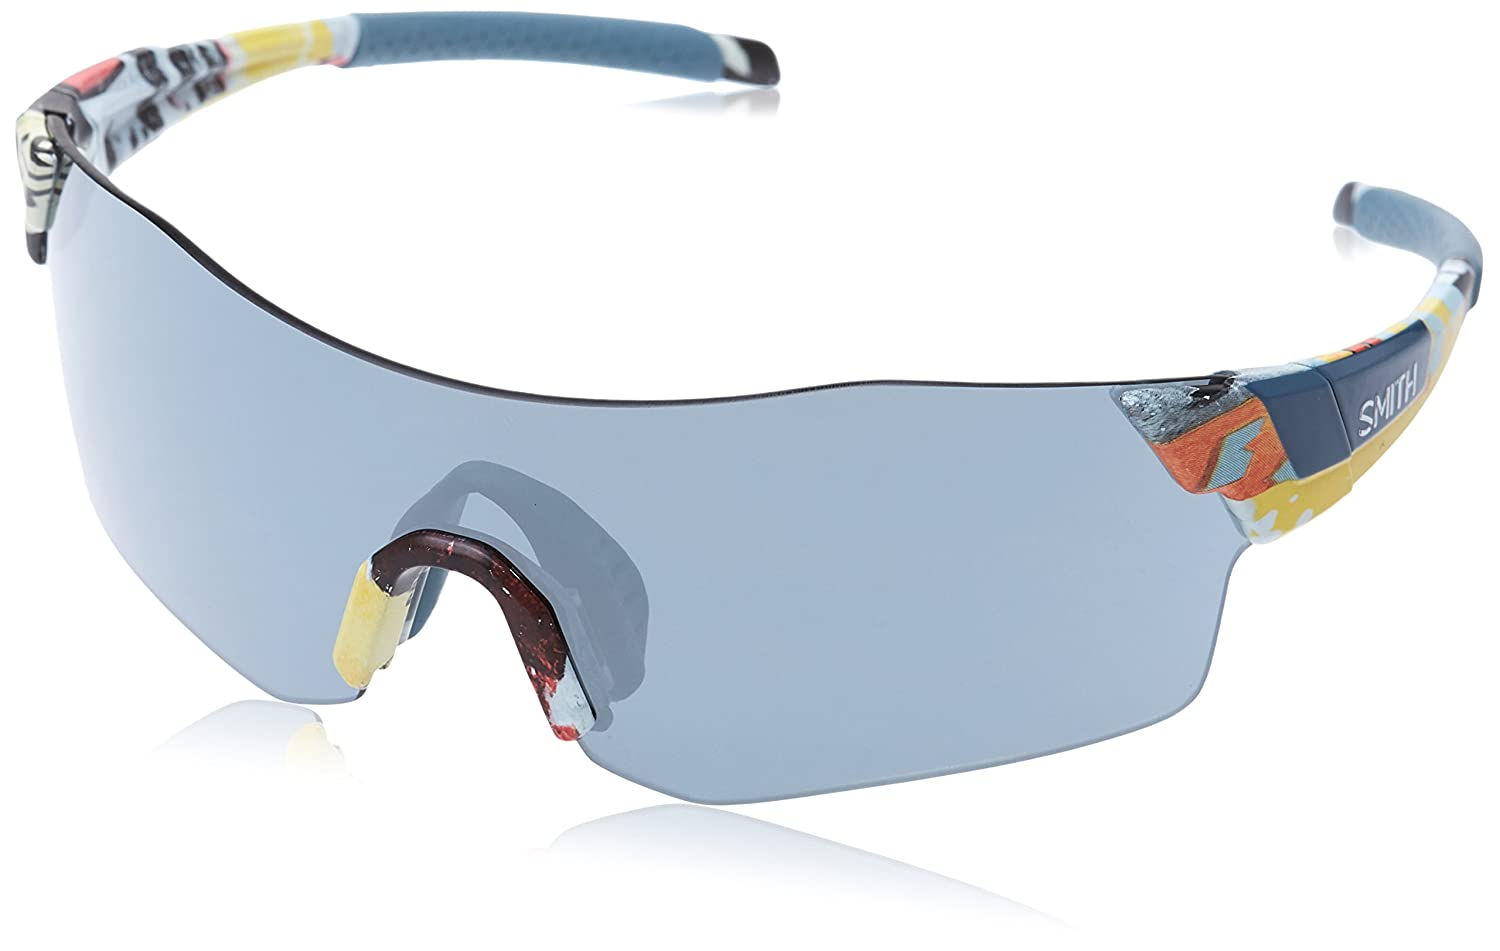 Blpetr Blflw//SIL Grey Speckled Cp Smith Unisexs PIVLOCK ARENA//N XB Sunglasses 99